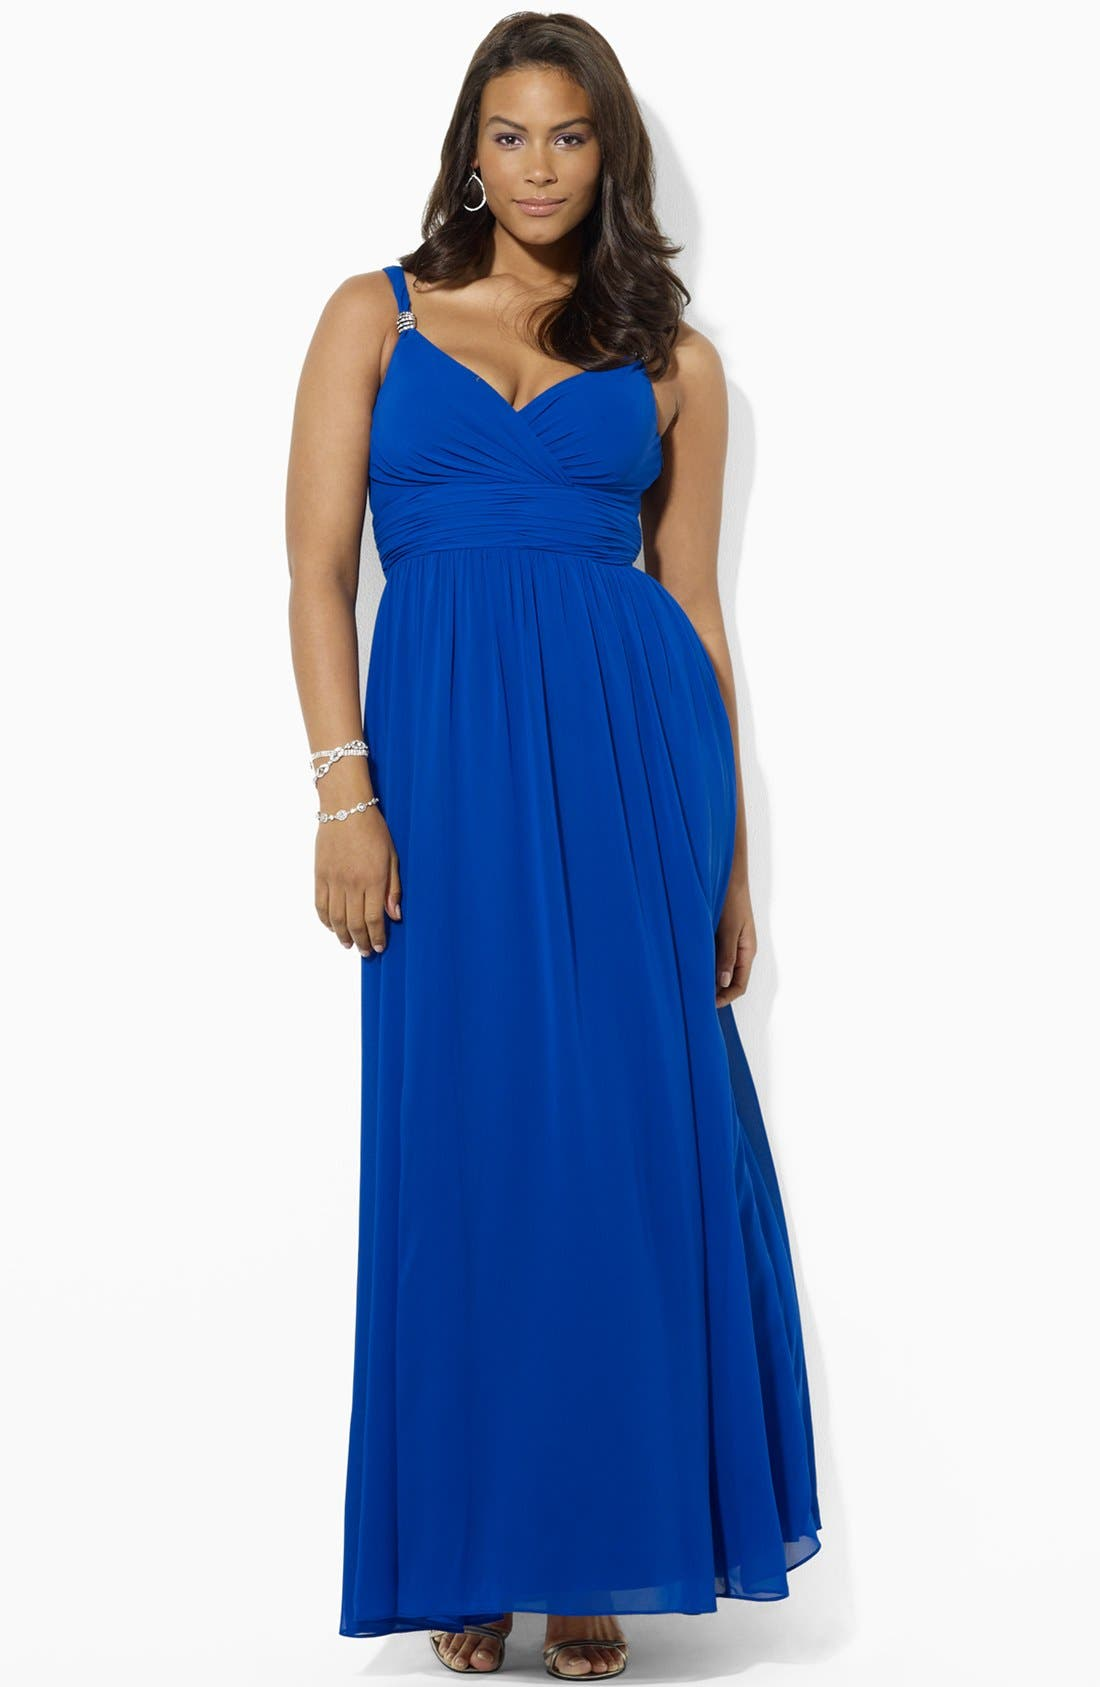 Alternate Image 1 Selected - Lauren Ralph Lauren Embellished Surplice Chiffon Gown (Plus Size)